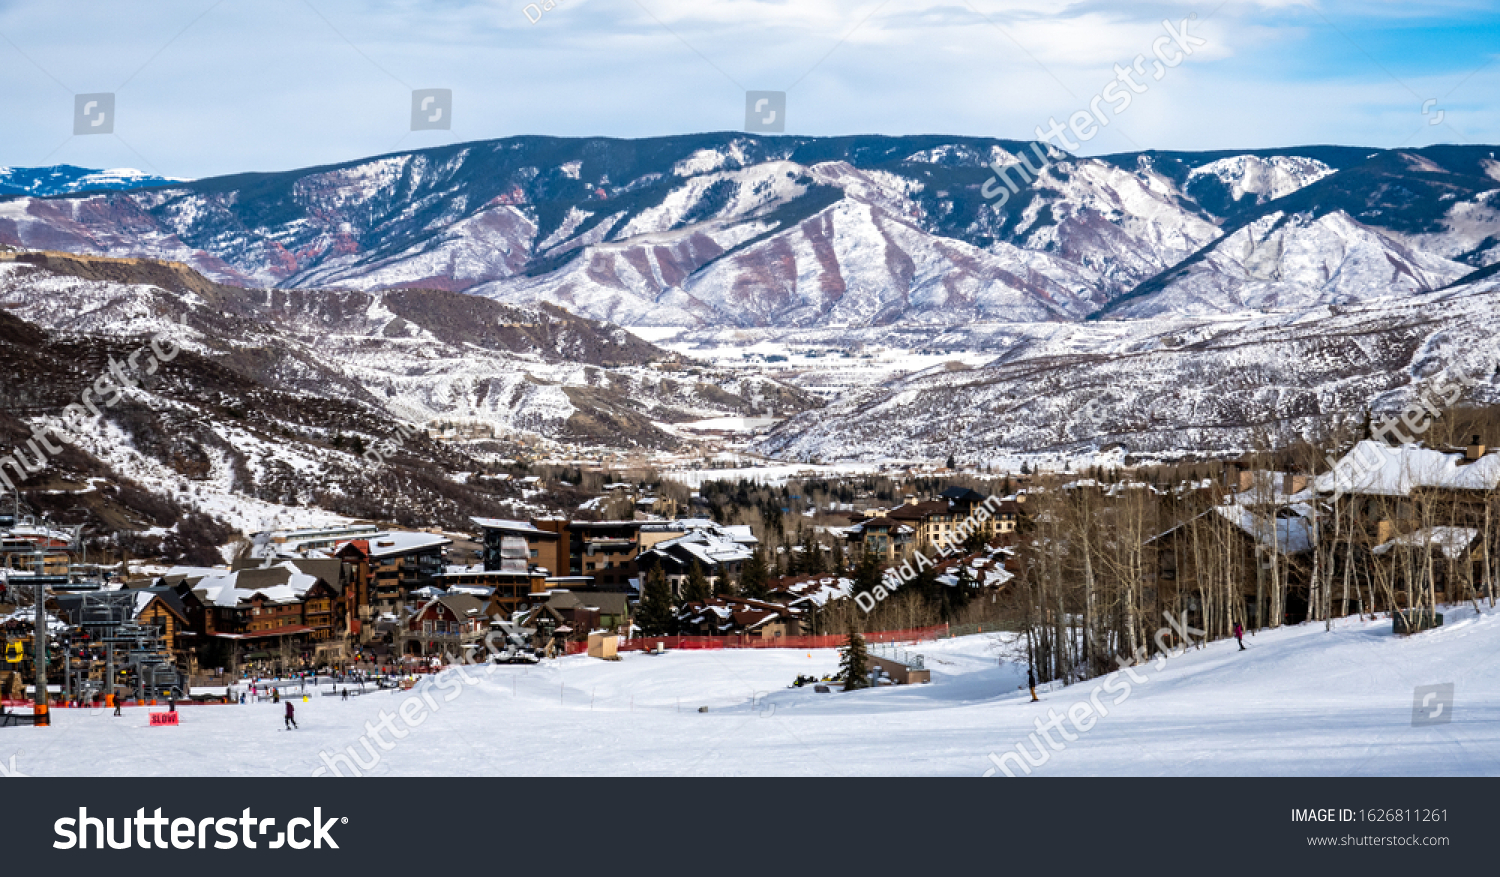 Panoramic view of Snowmass Village, with skiers skiing at the Aspen Snowmass ski resort in the foreground and the Rocky Mountains of Colorado in the background, on a partly cloudy winter day.